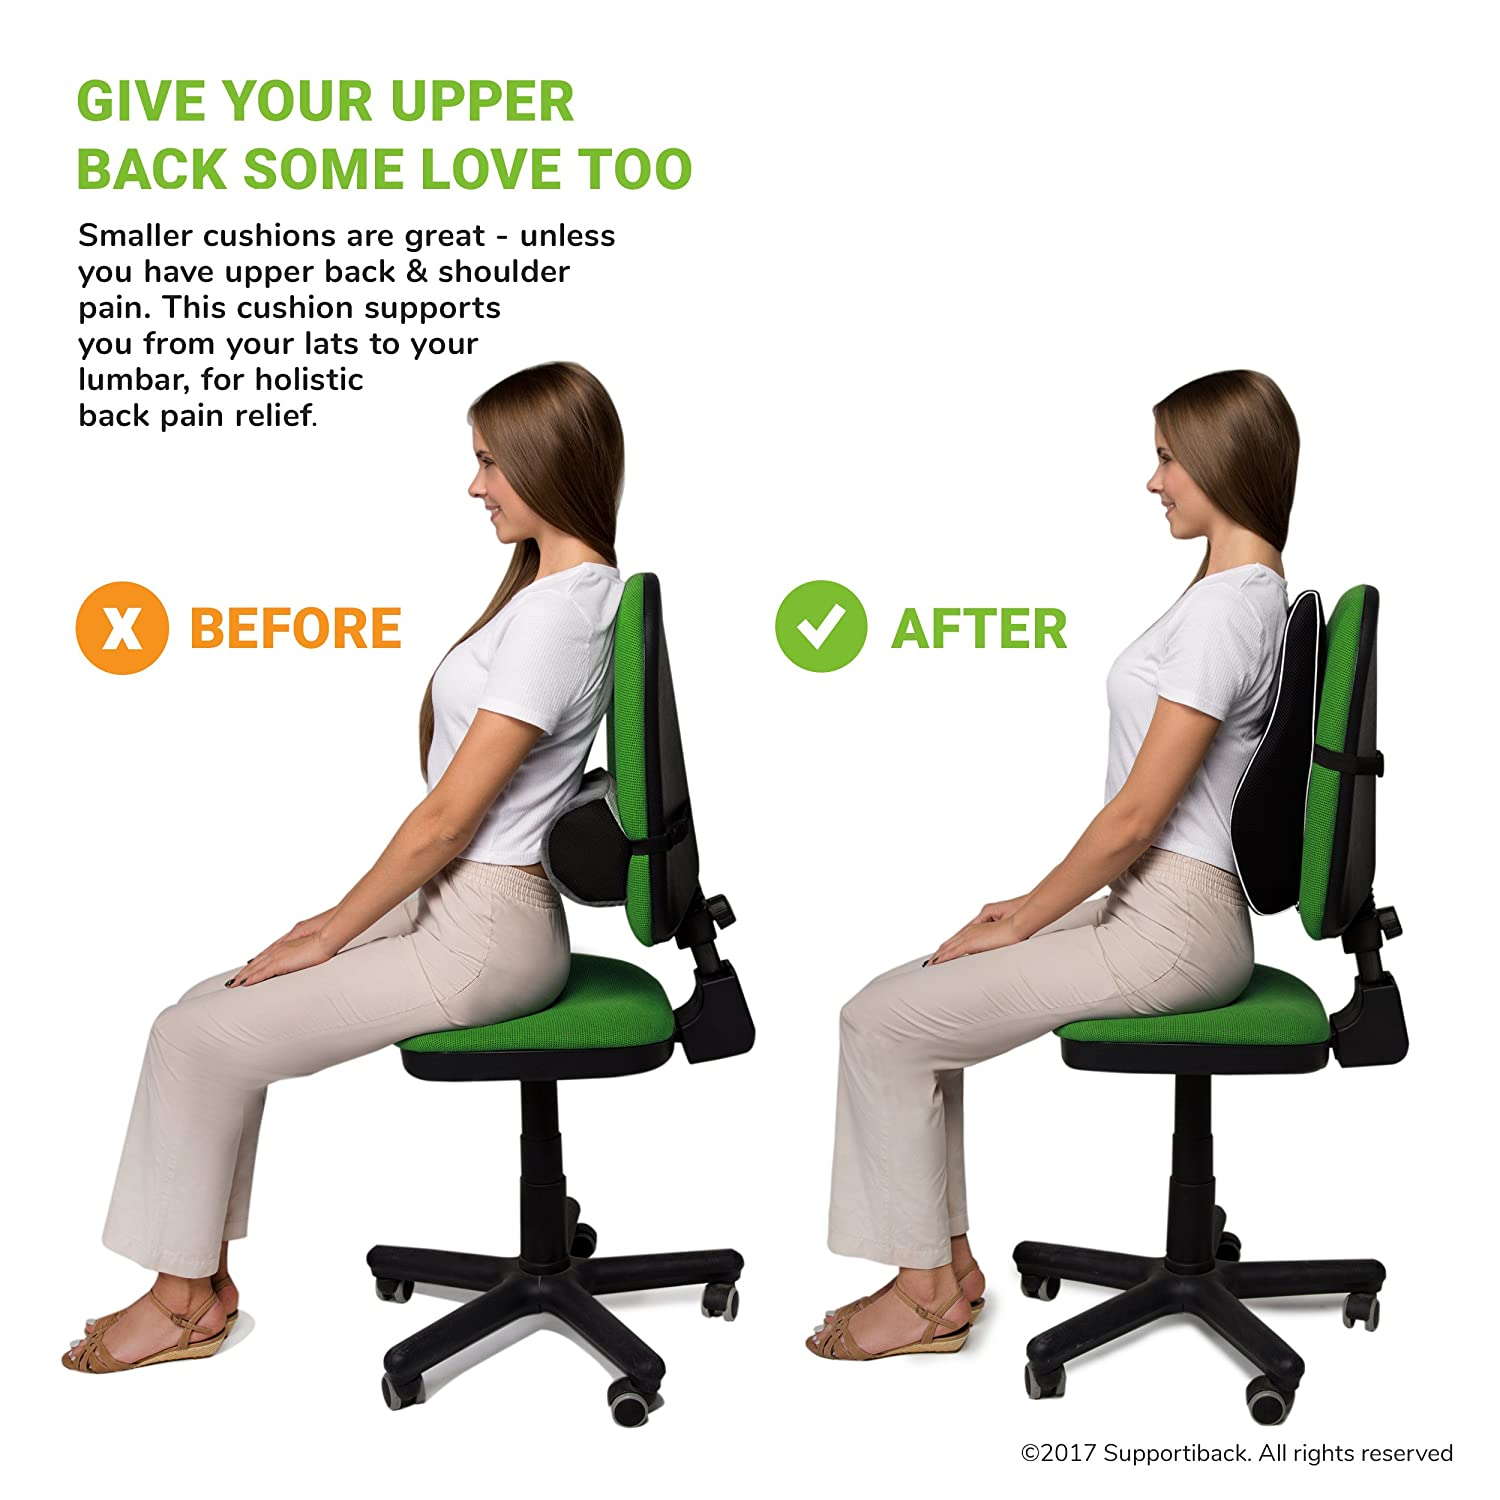 Ergonomic Back Support Pillow For Home Supportiback/® Posture Therapy Memory Lumbar Cushion Office Travel Car Relieve /& Prevent Upper /& Lower Back Pain